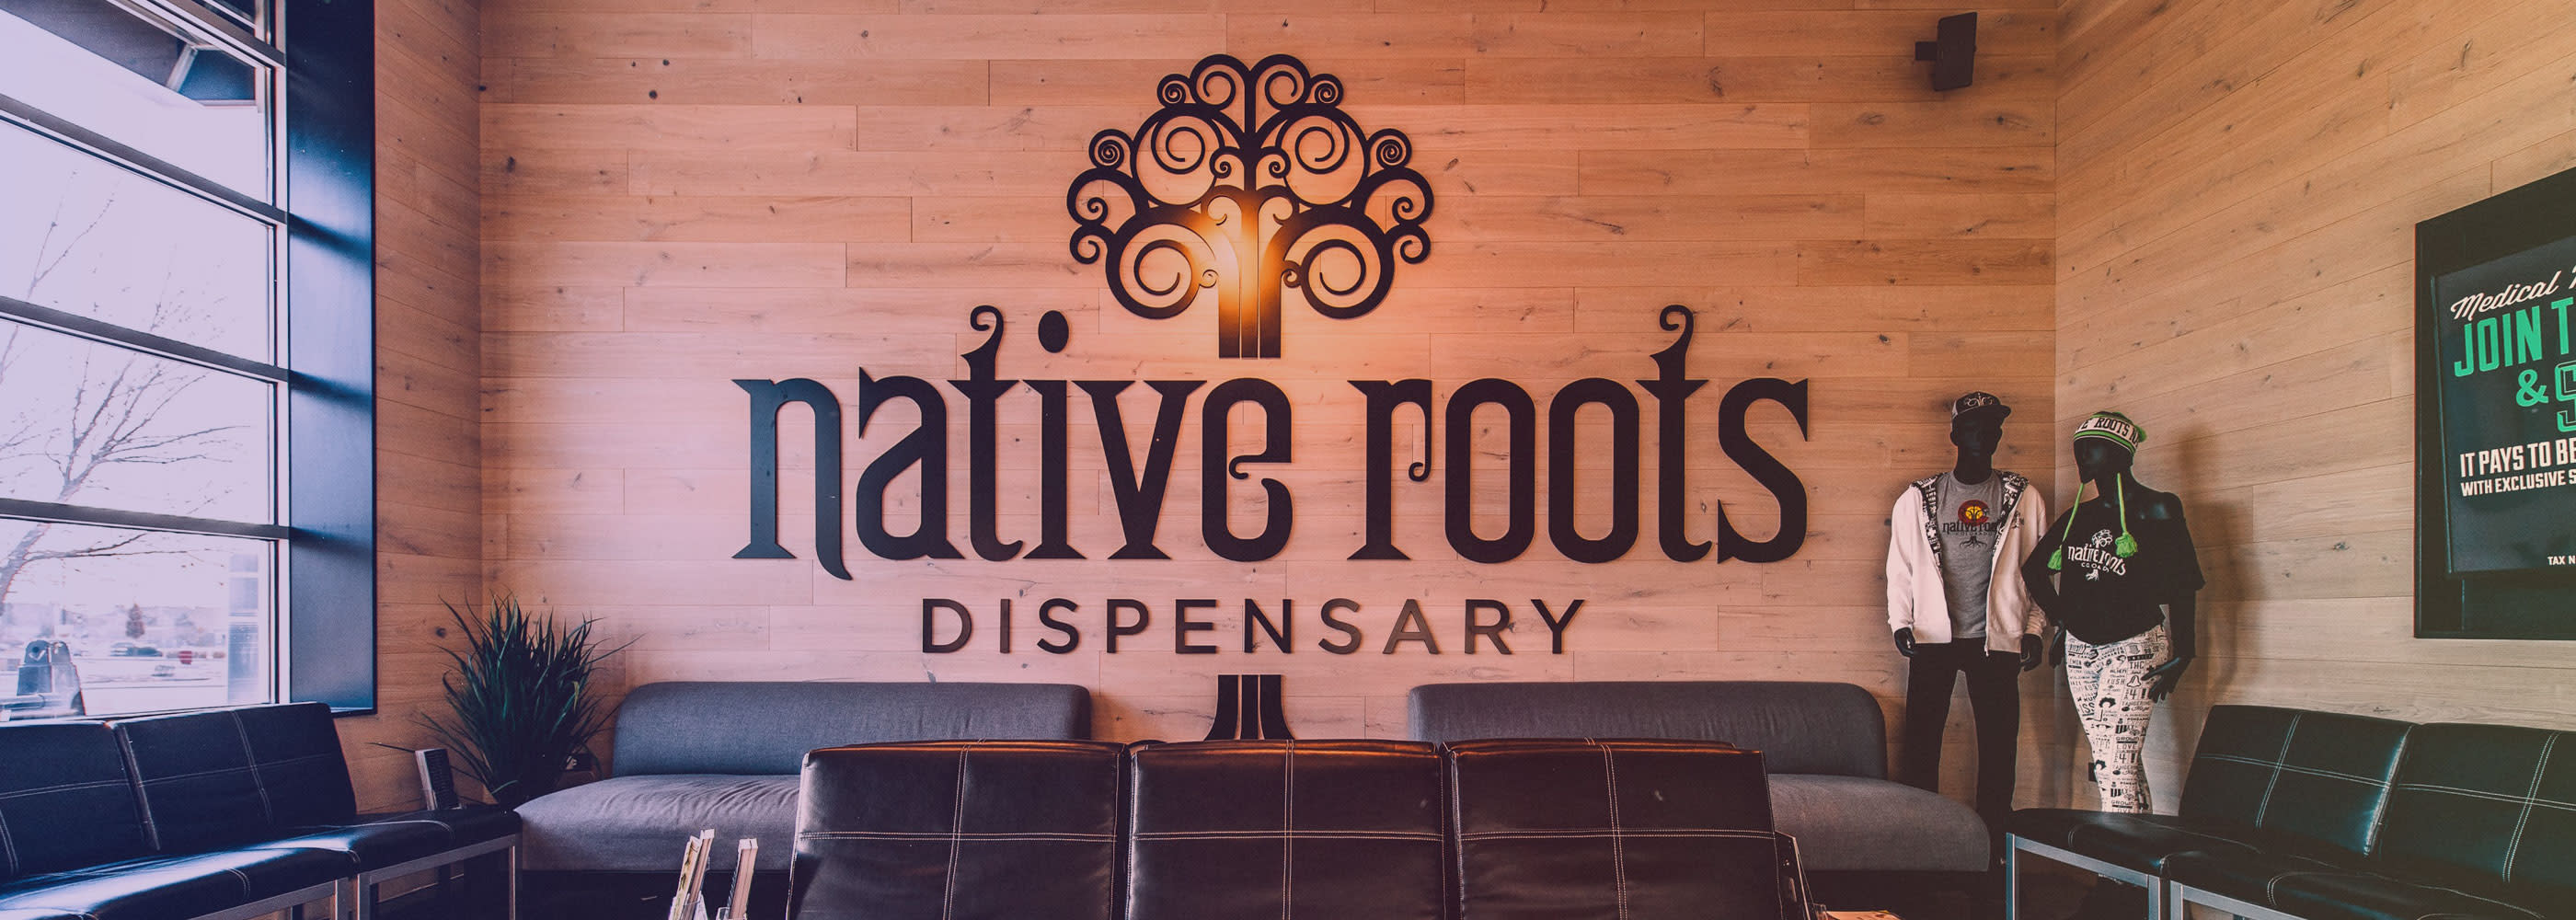 native roots littleton location